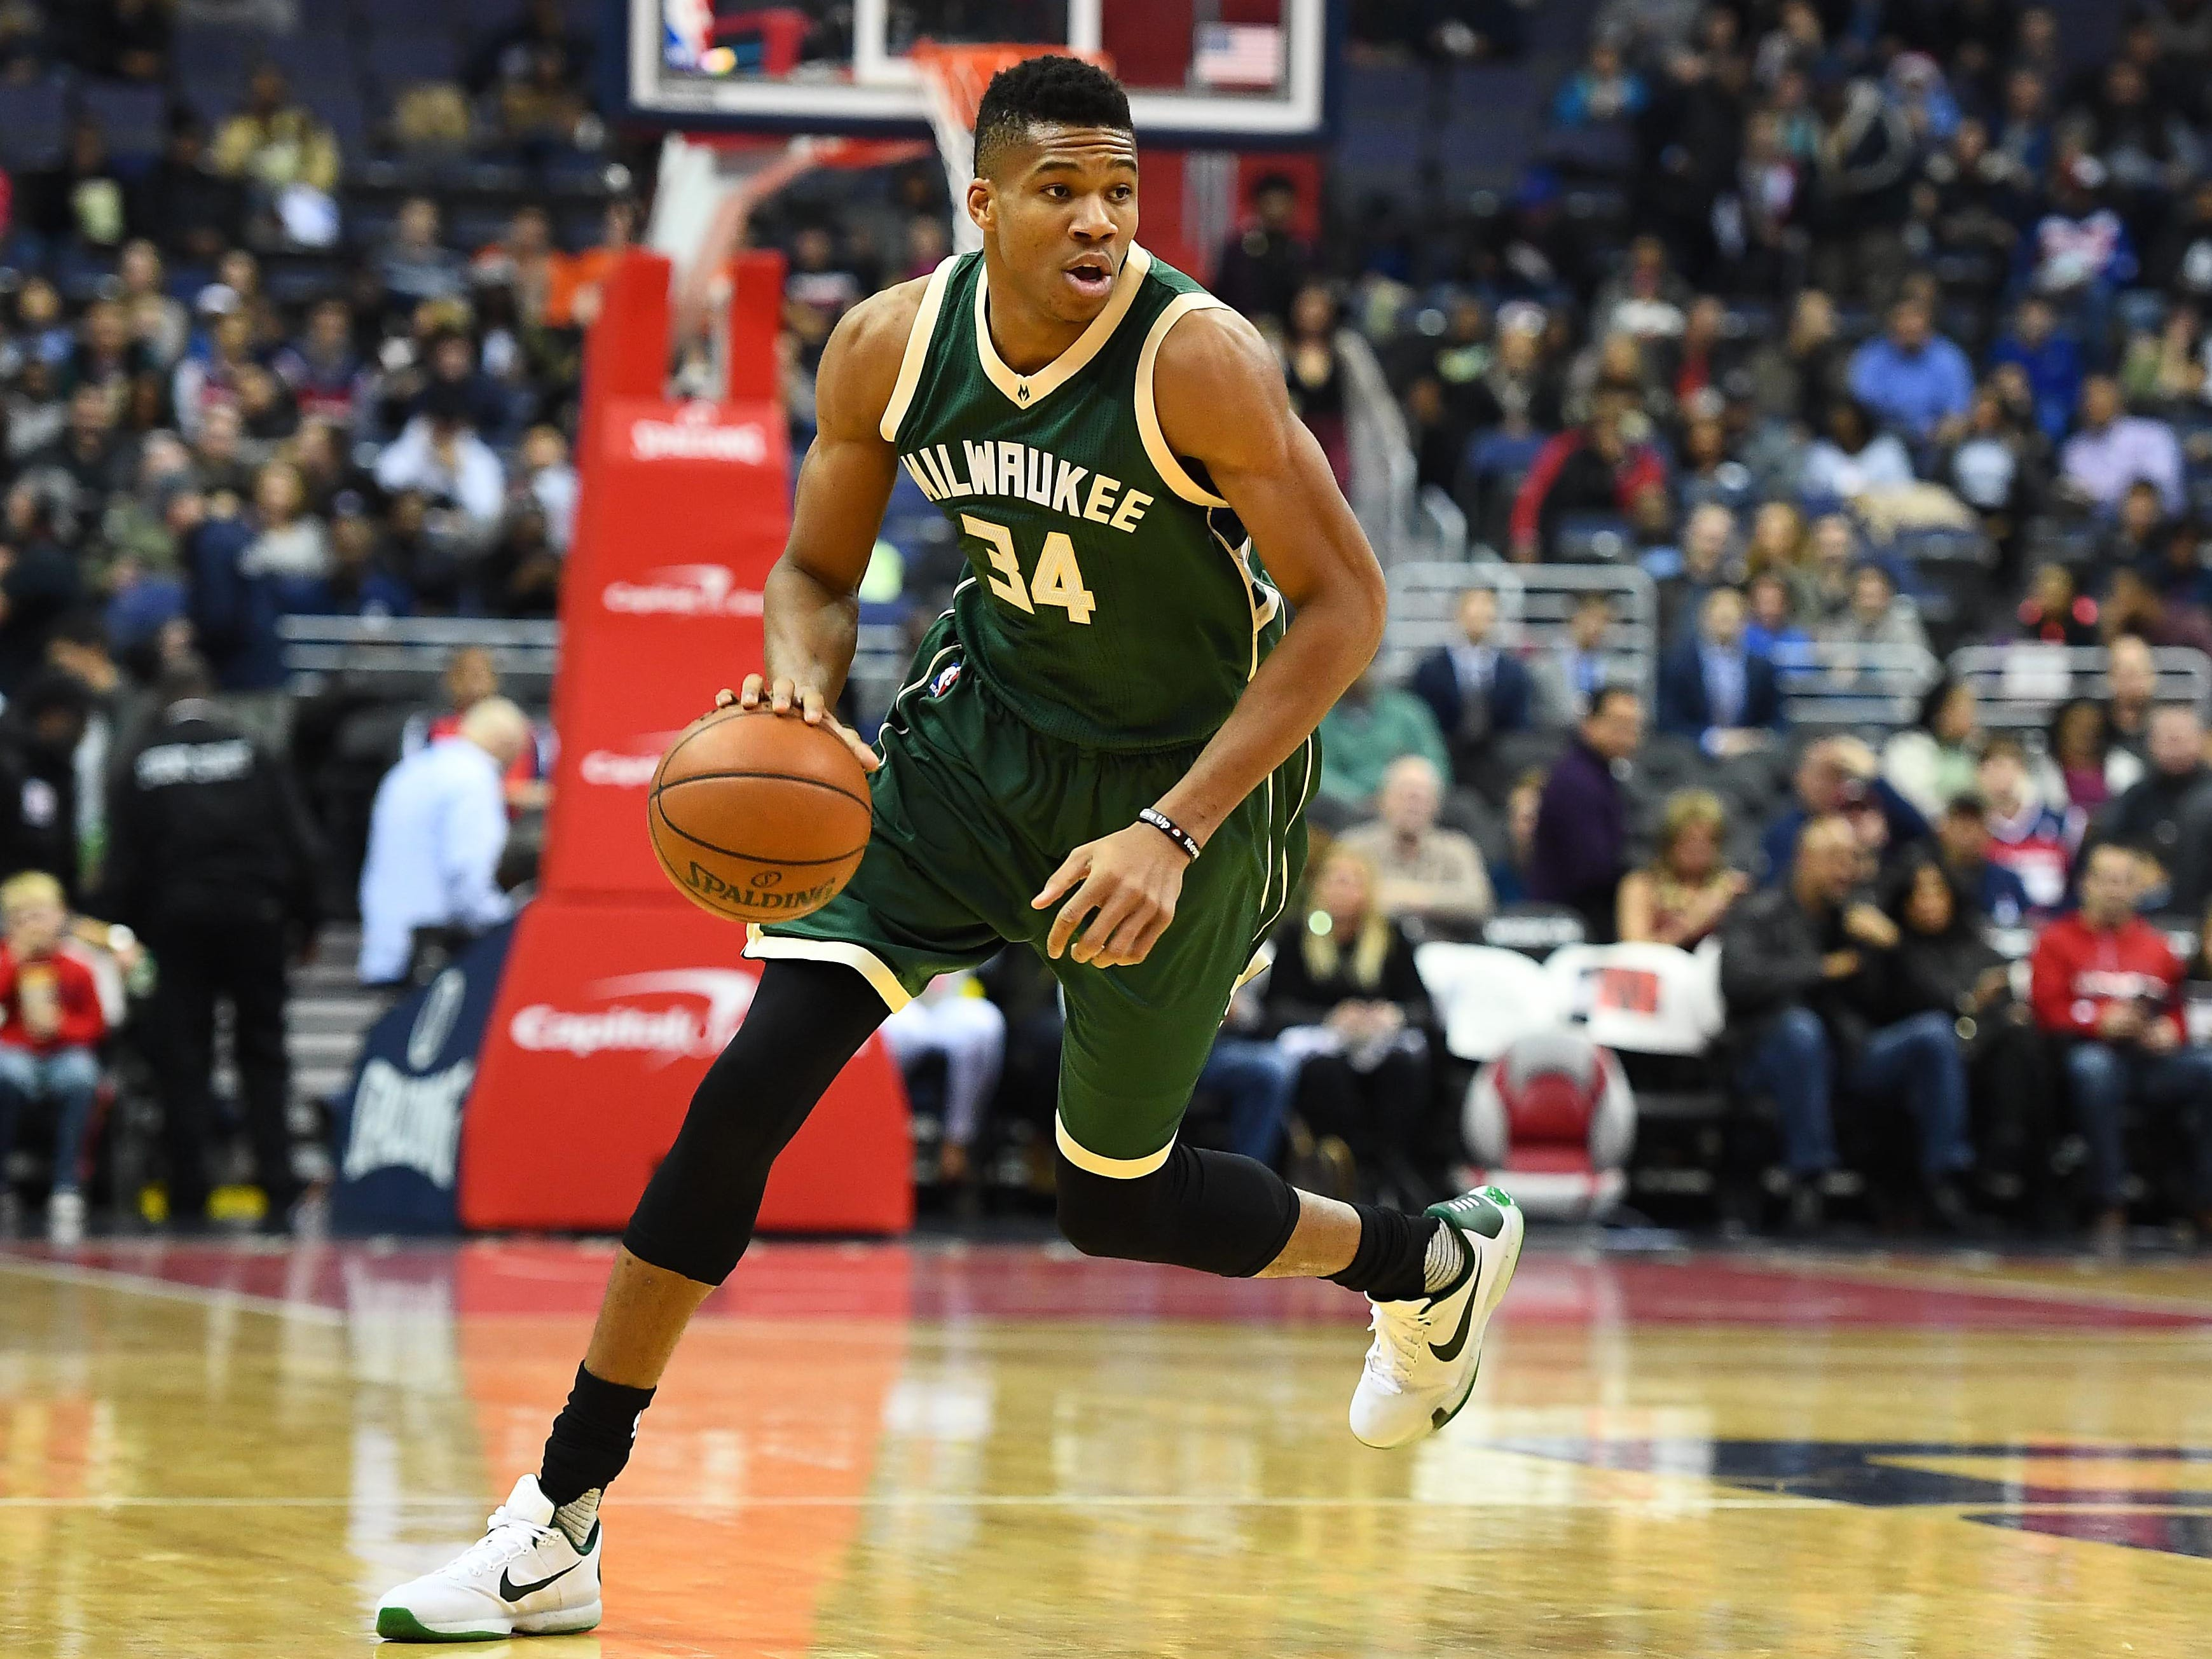 Antetokounmpo dribbles up the court during a 2016 game against Washington.